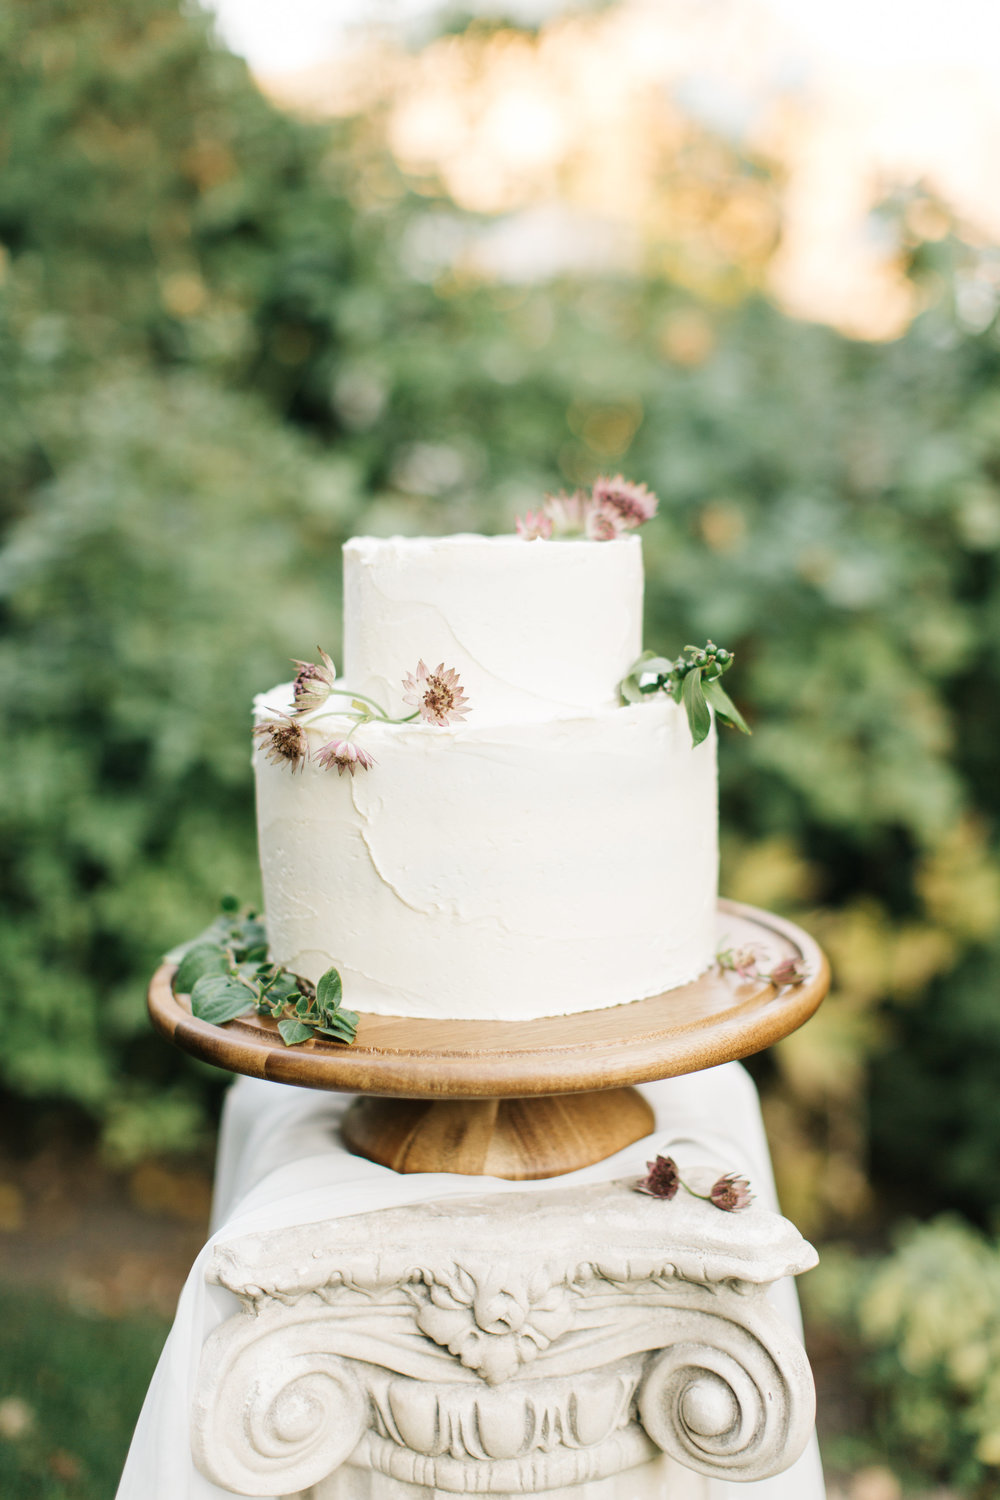 Mila Adams - Kentucky Utah Wedding Florist - White Cake Flowers Purple